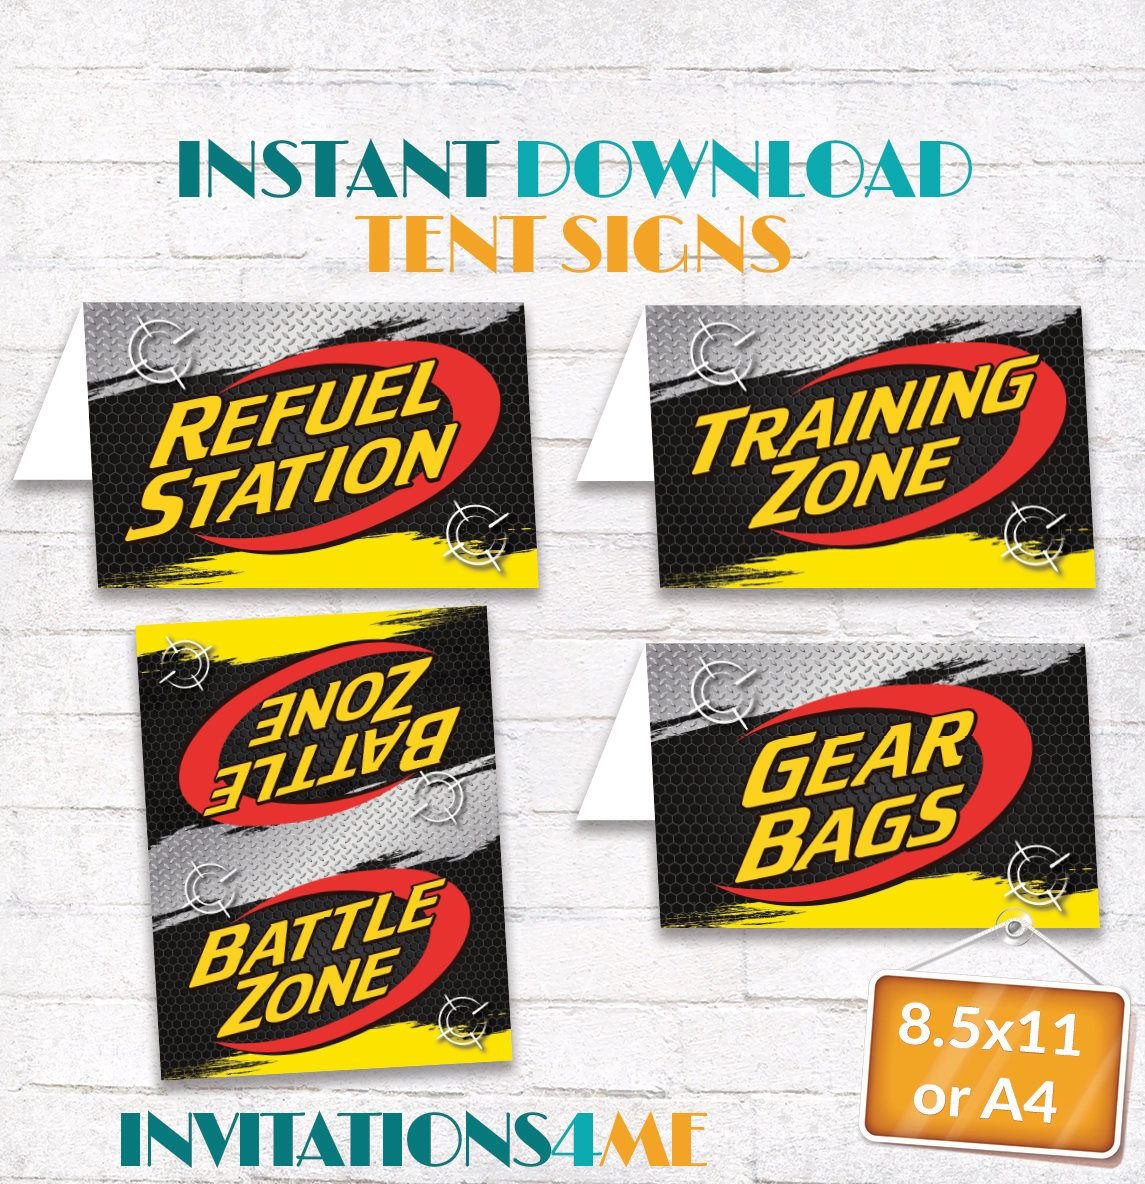 Nerf Tent Party Signs Nerf Birthday Posters Training Zone - Battle Zone - Gear Bags - Refuel Station Decorations INSTANT DIGITAL DOWNLOAD  sc 1 st  Pinterest & Nerf Tent Party Signs Nerf Birthday Posters Training Zone - Battle ...